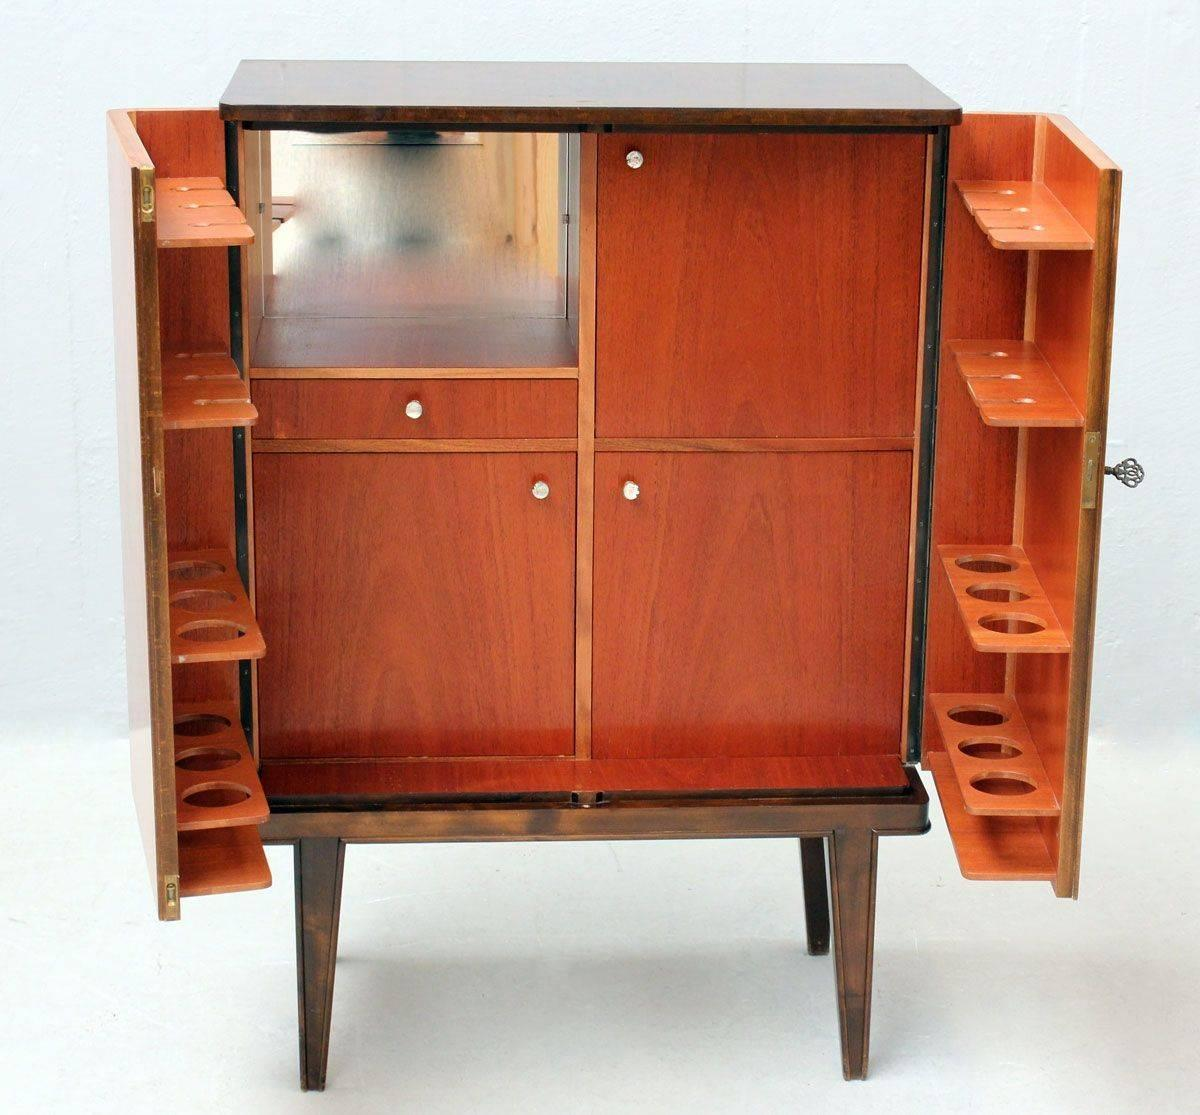 Funkis cocktail cabinet for sale at 1stdibs for Funkis sale